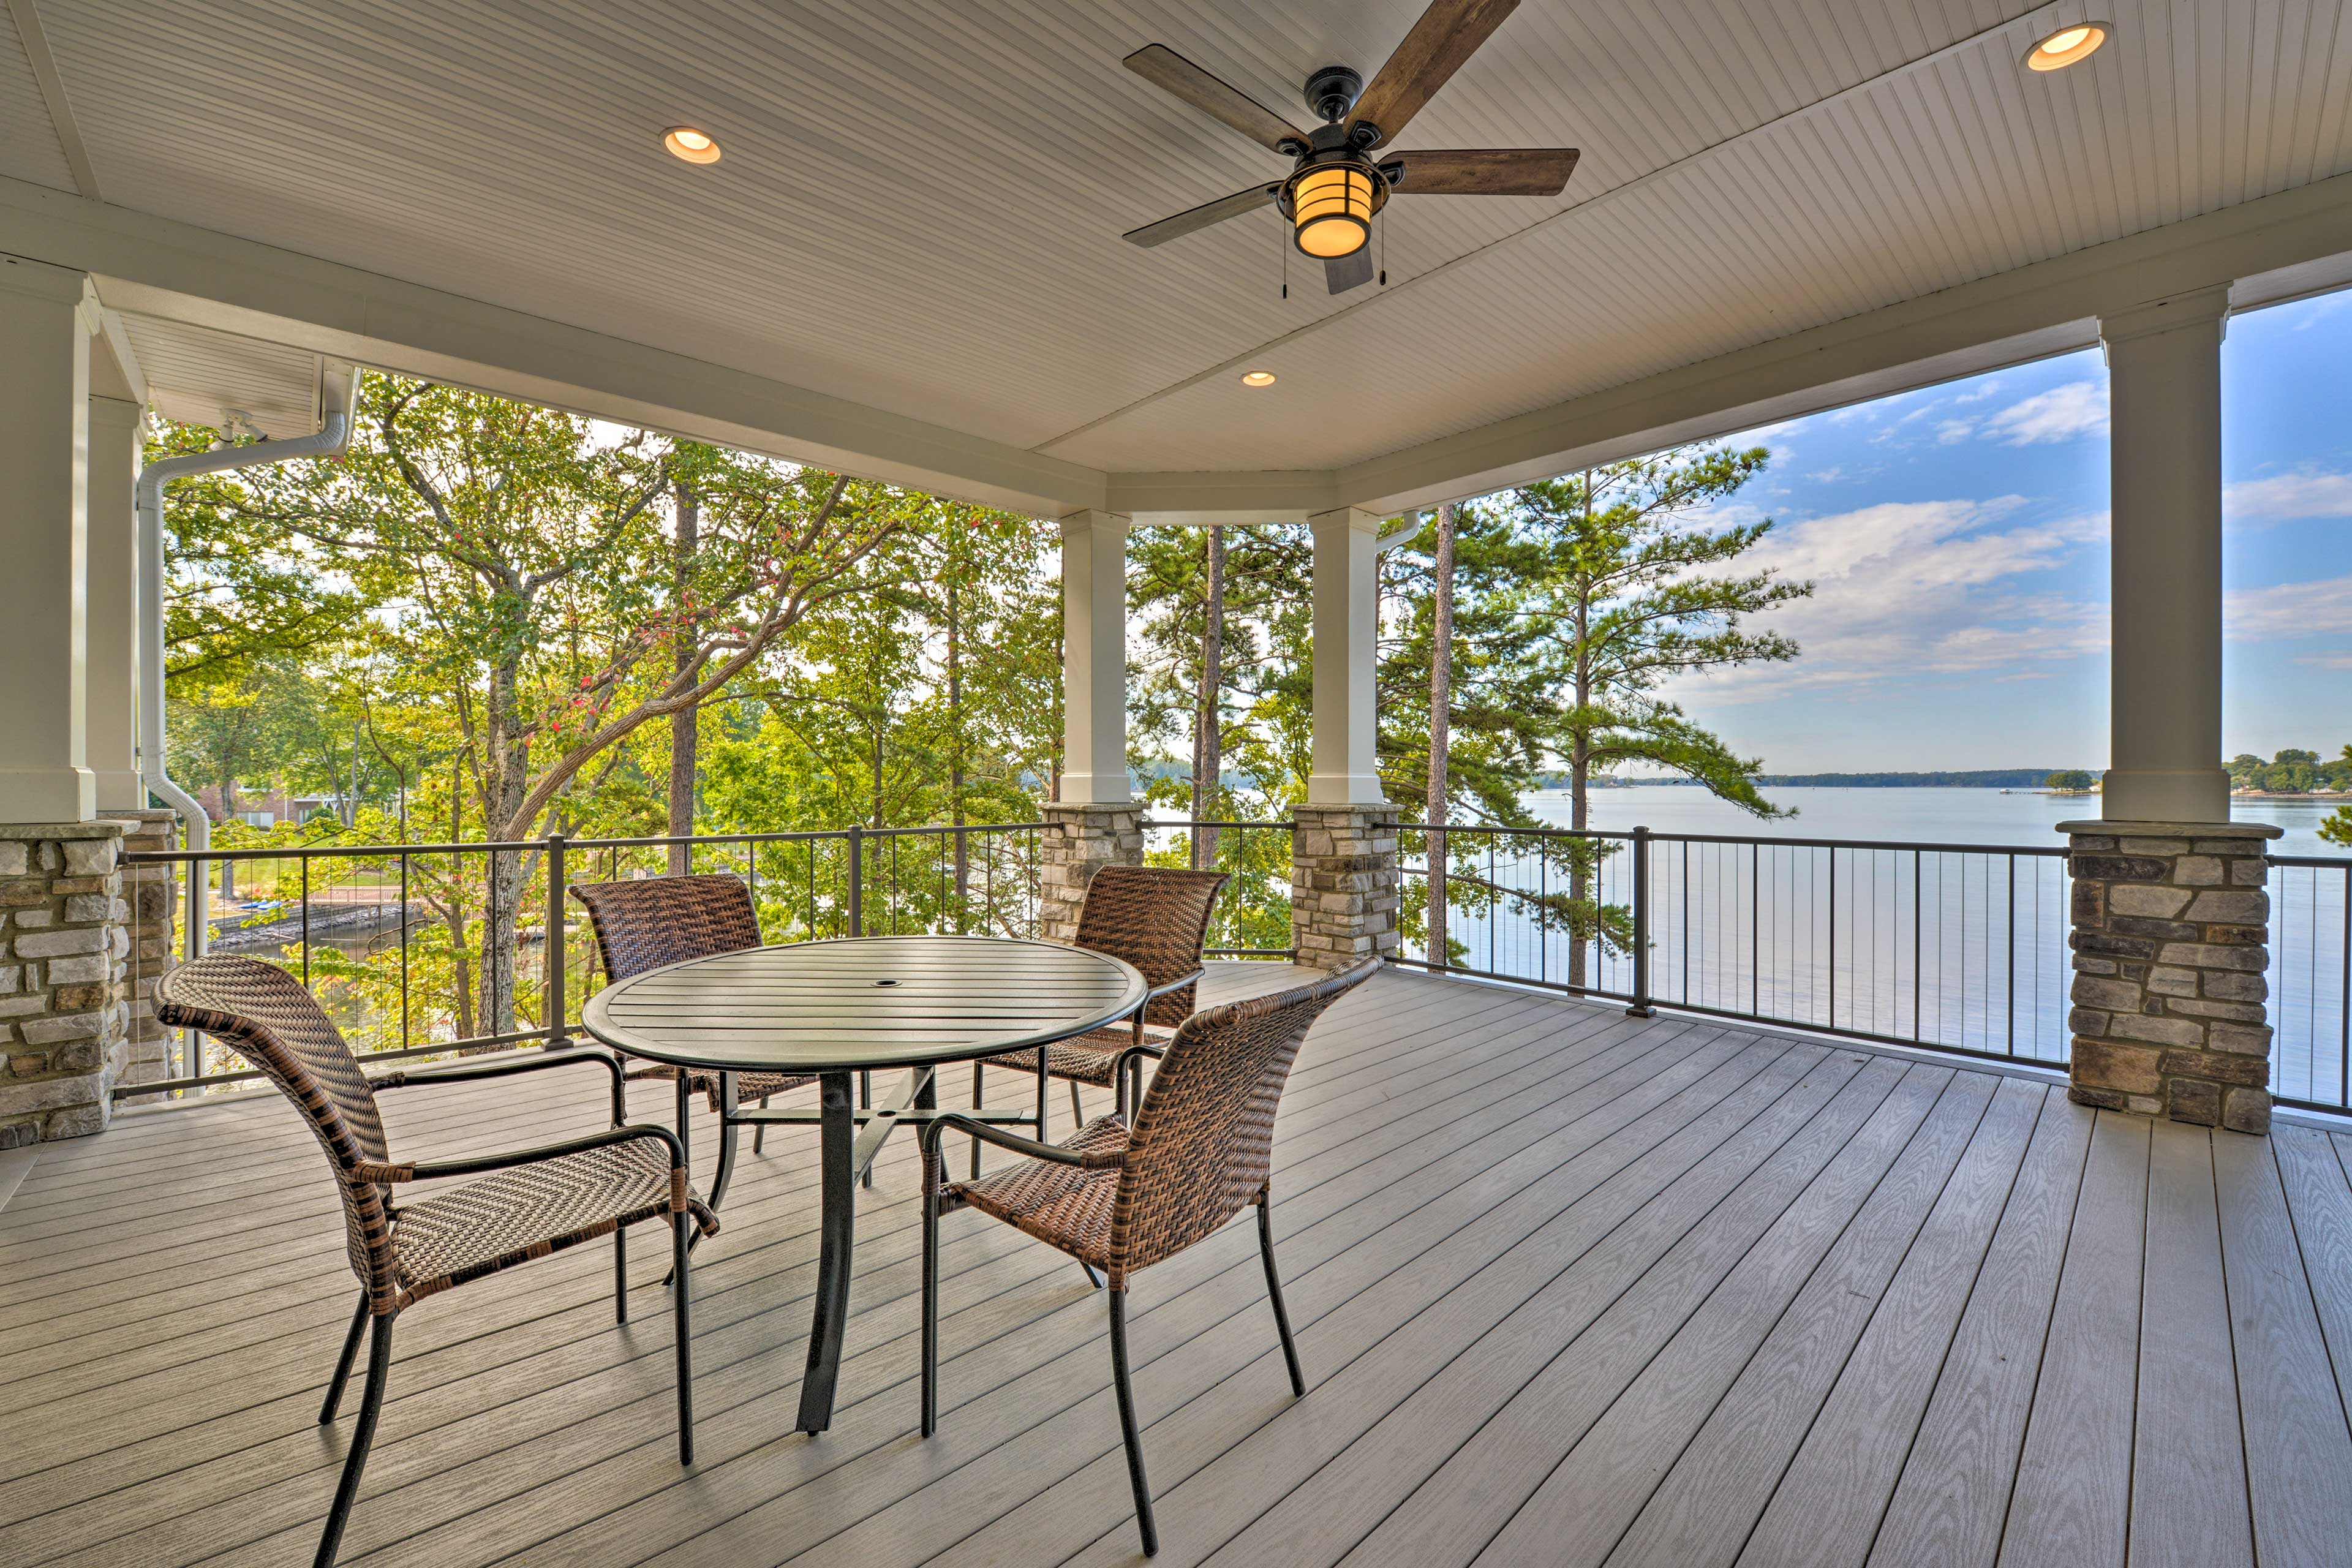 Take in the stunning views of Lake Norman from the large covered deck.